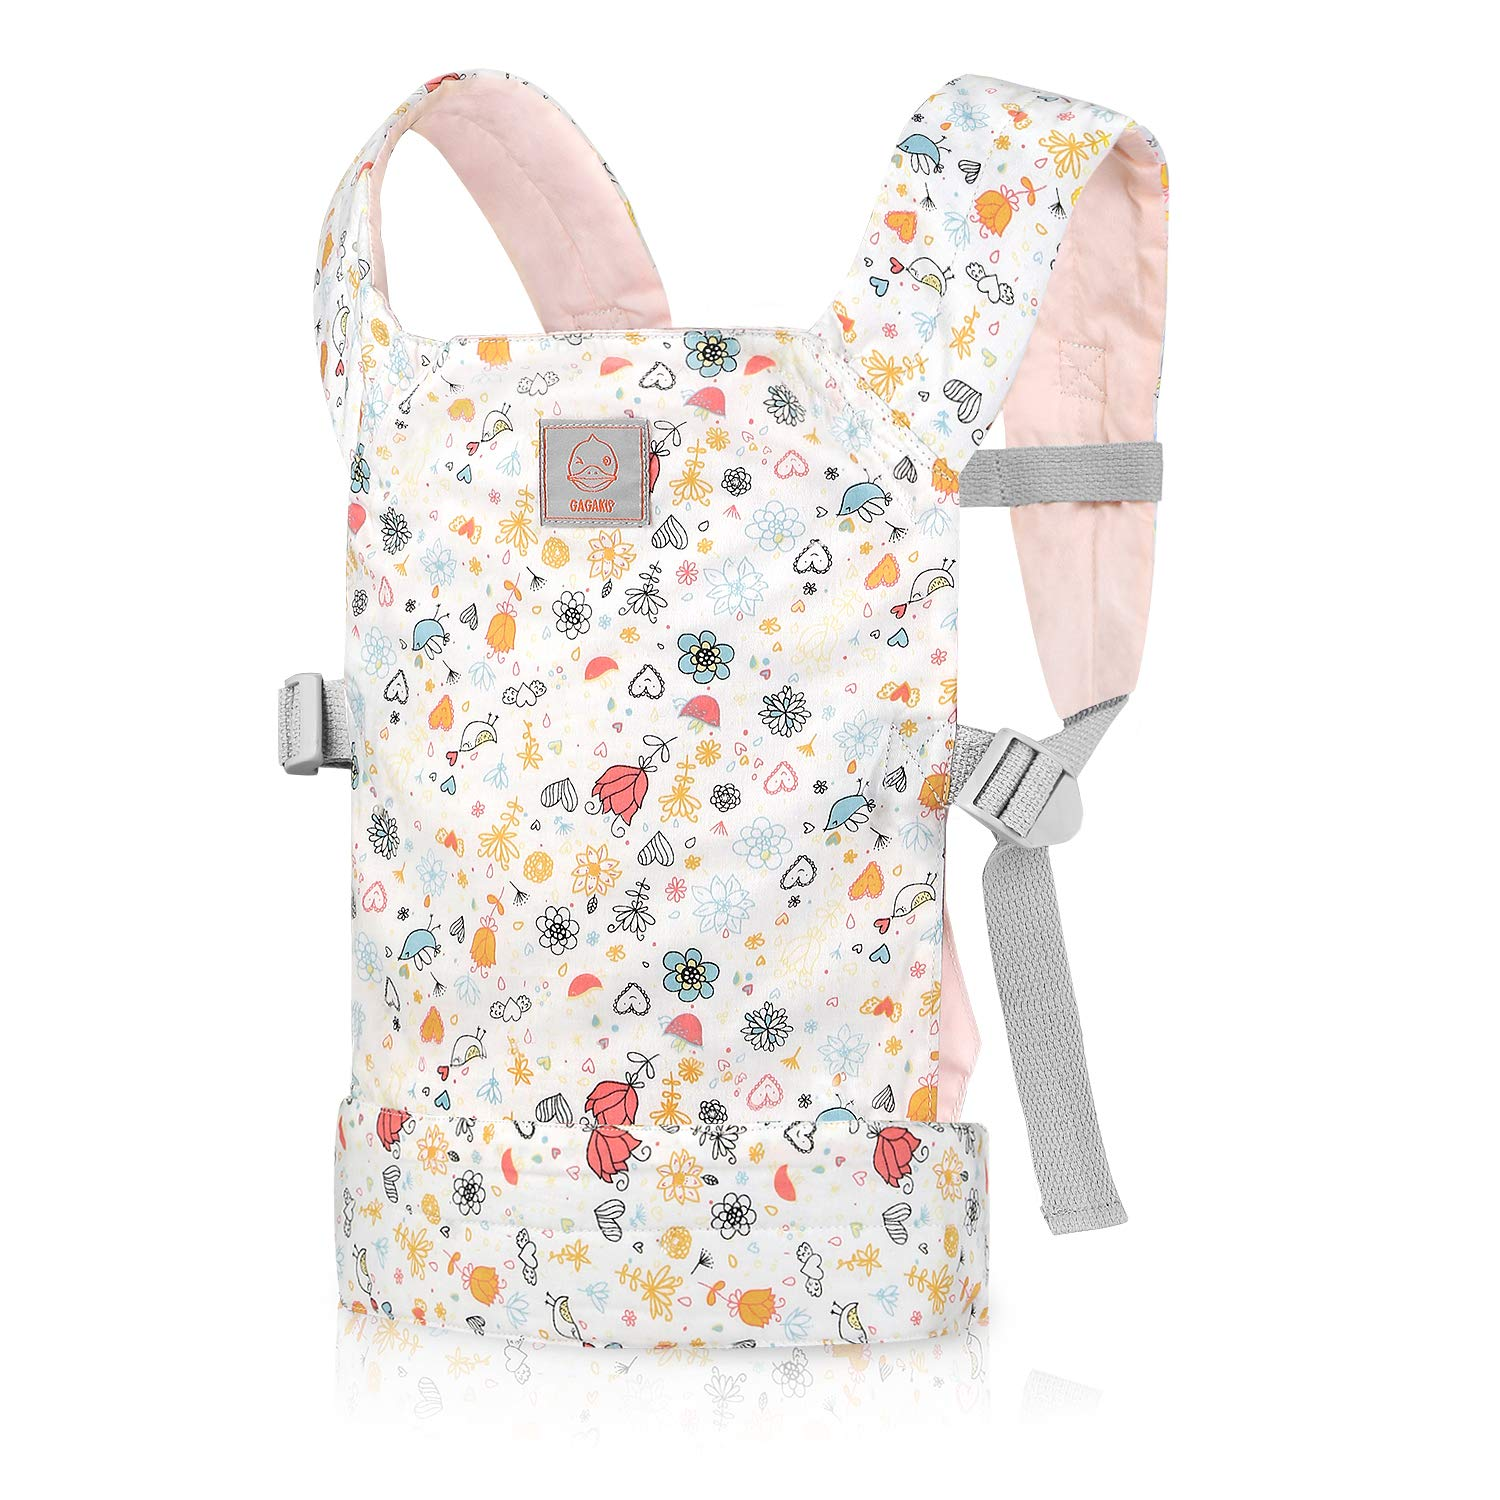 GAGAKU Doll Carrier Front and Back Soft Cotton for Baby Over 18 Months, Rose Garden Series